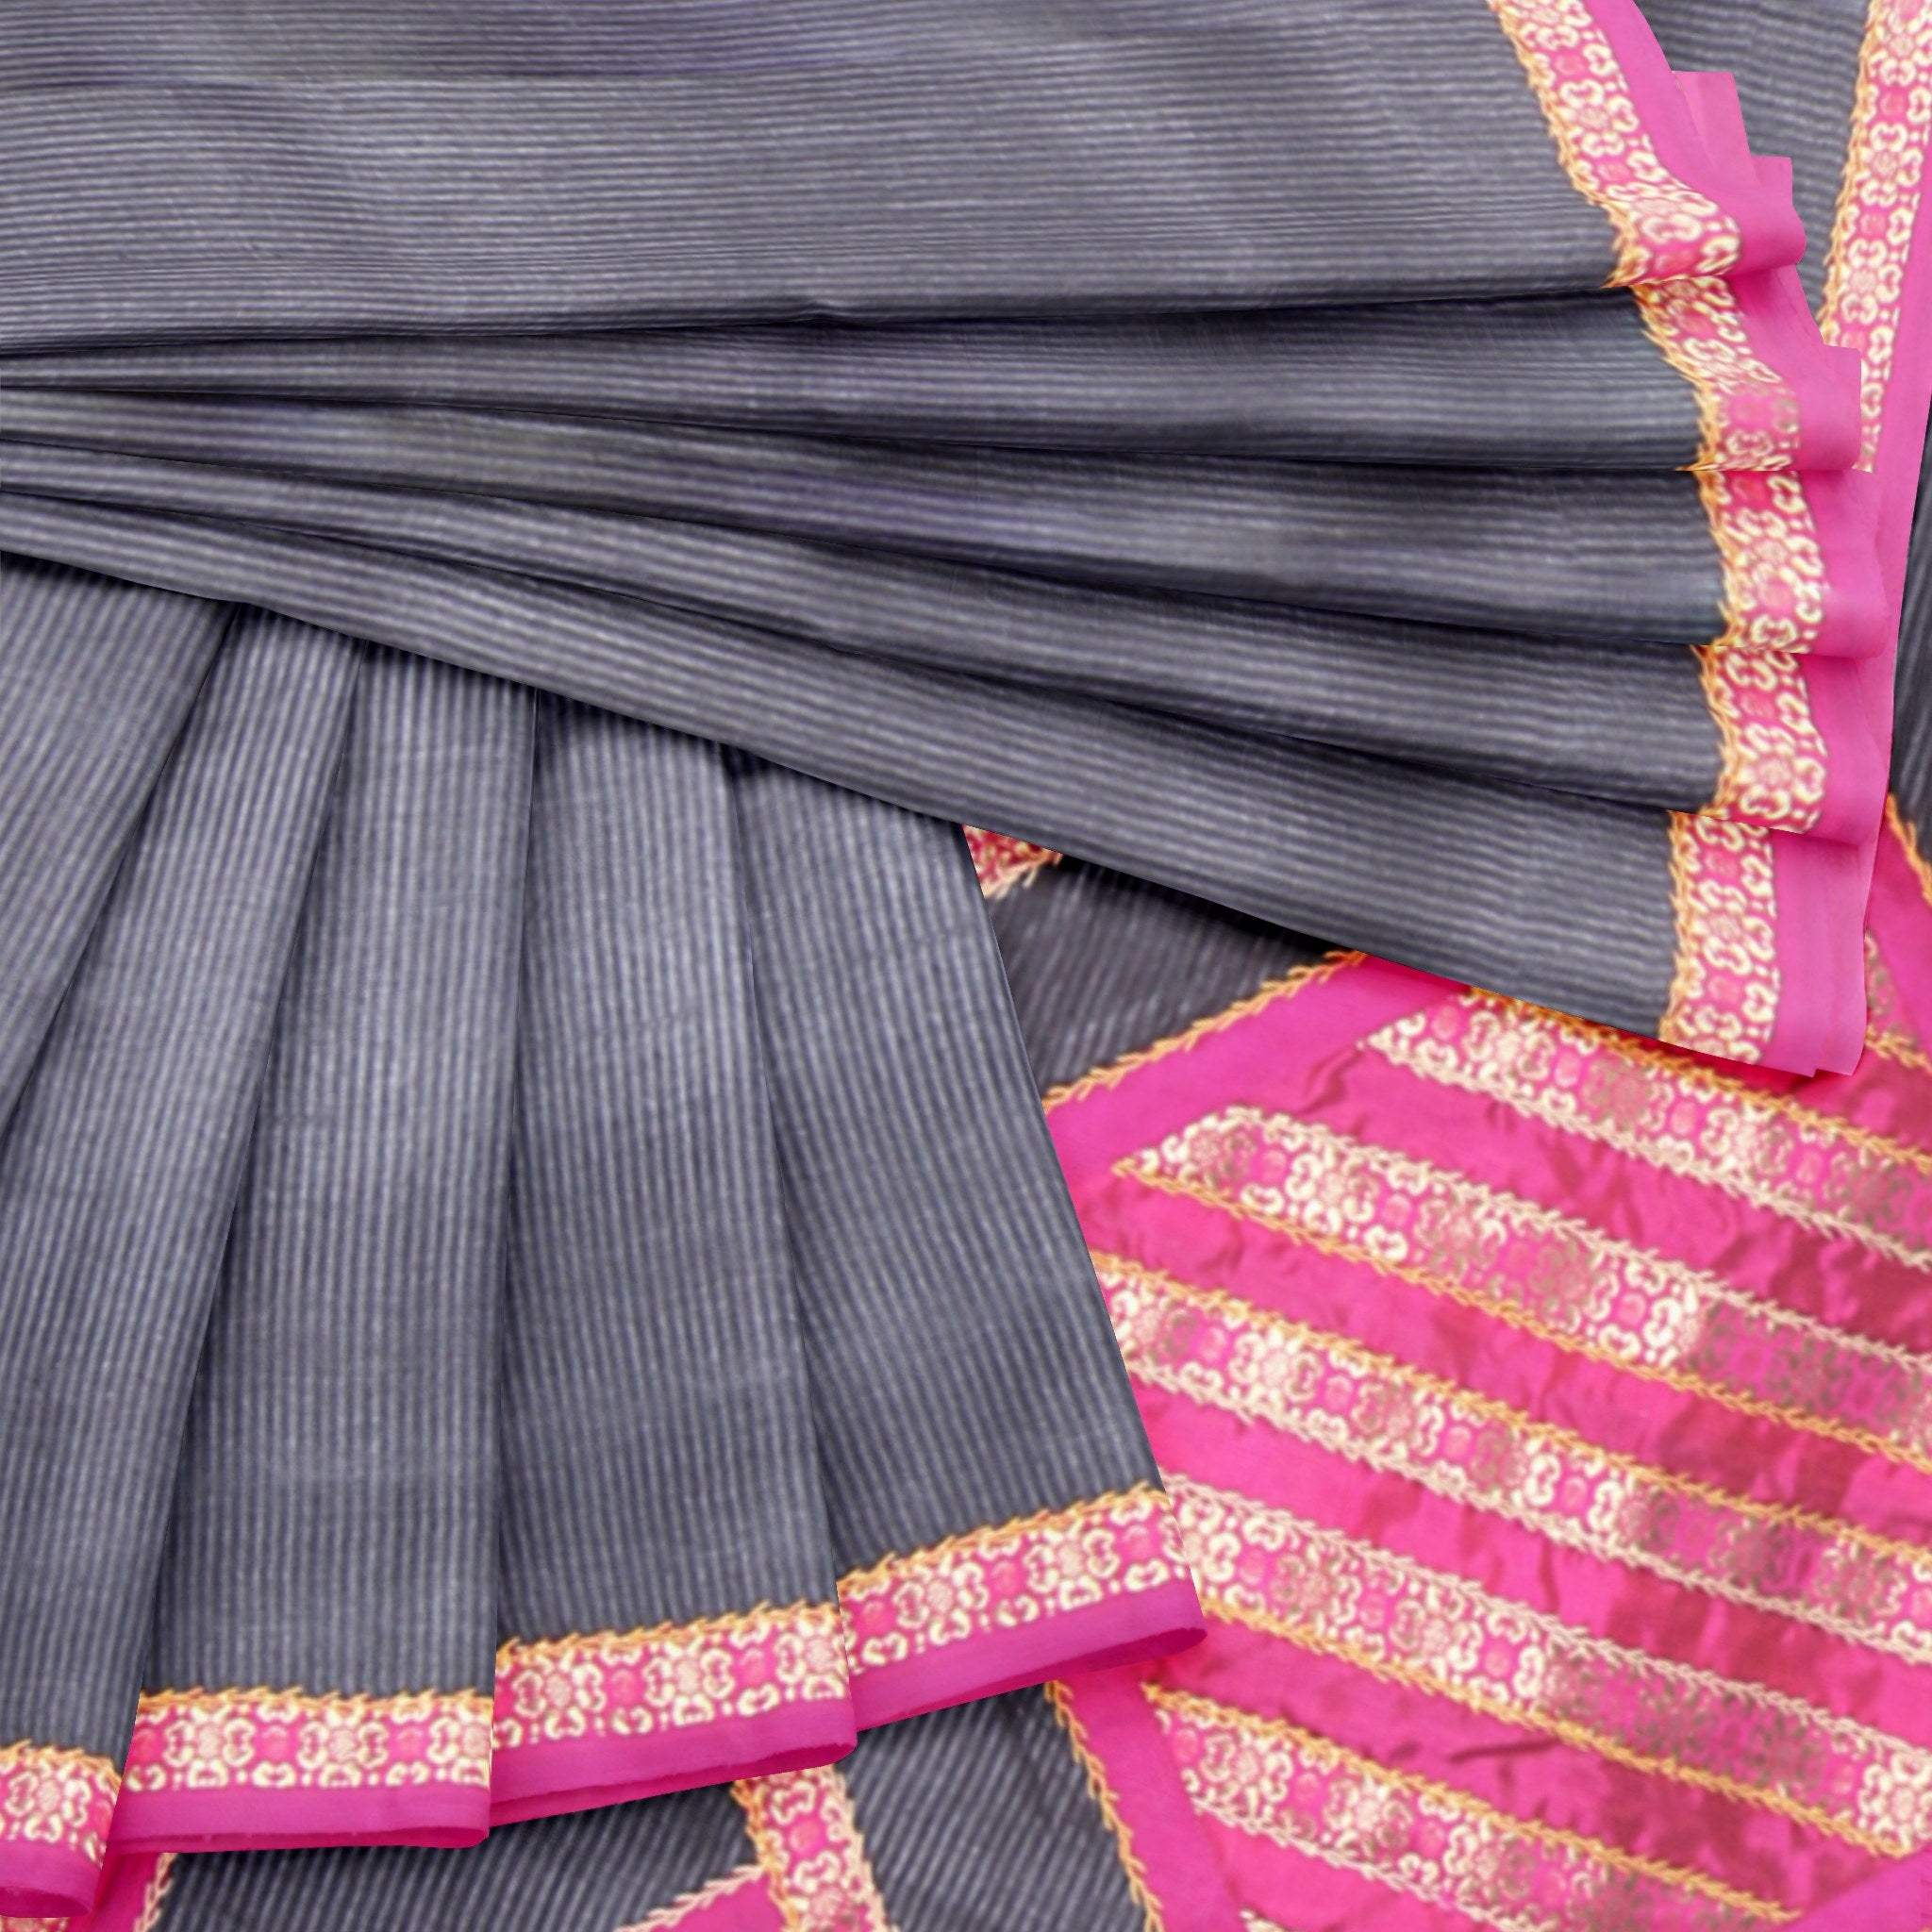 BB100825-Jet-Black Self-lined Tussar Silk Saree with Brocade Patchwork